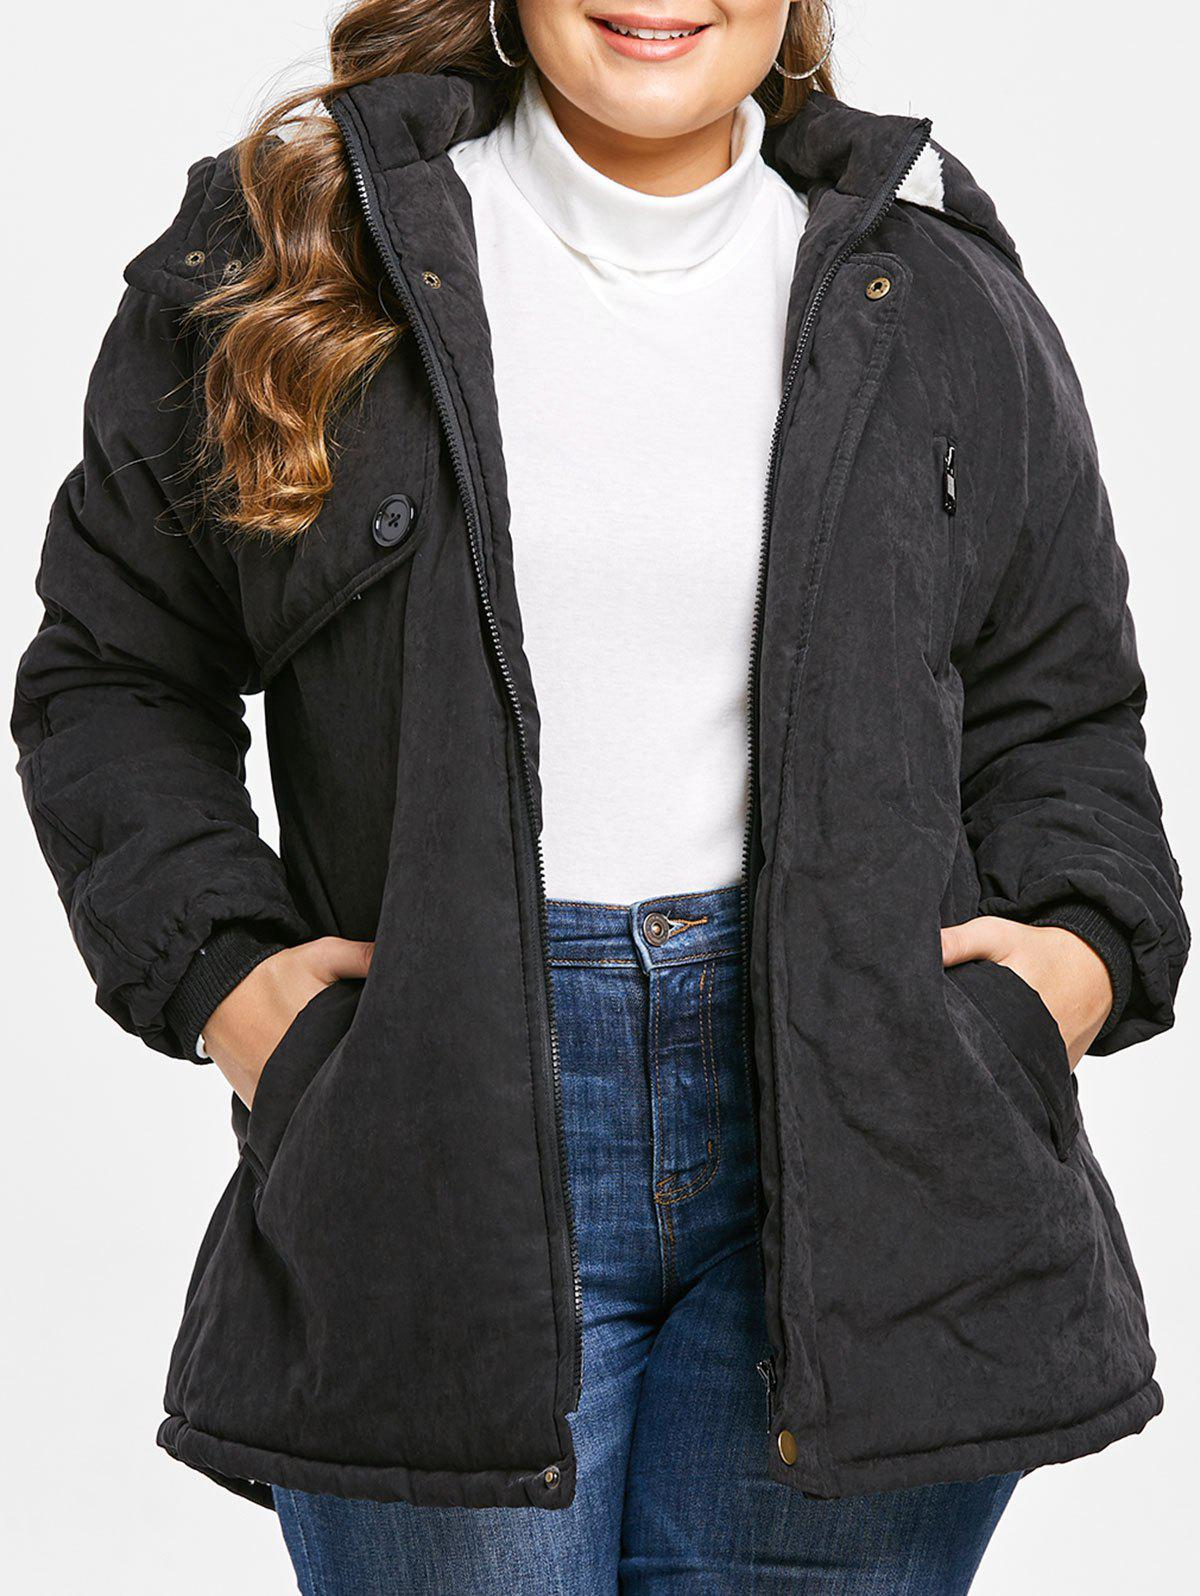 Unique Zip Embellished Plus Size Hooded Coat